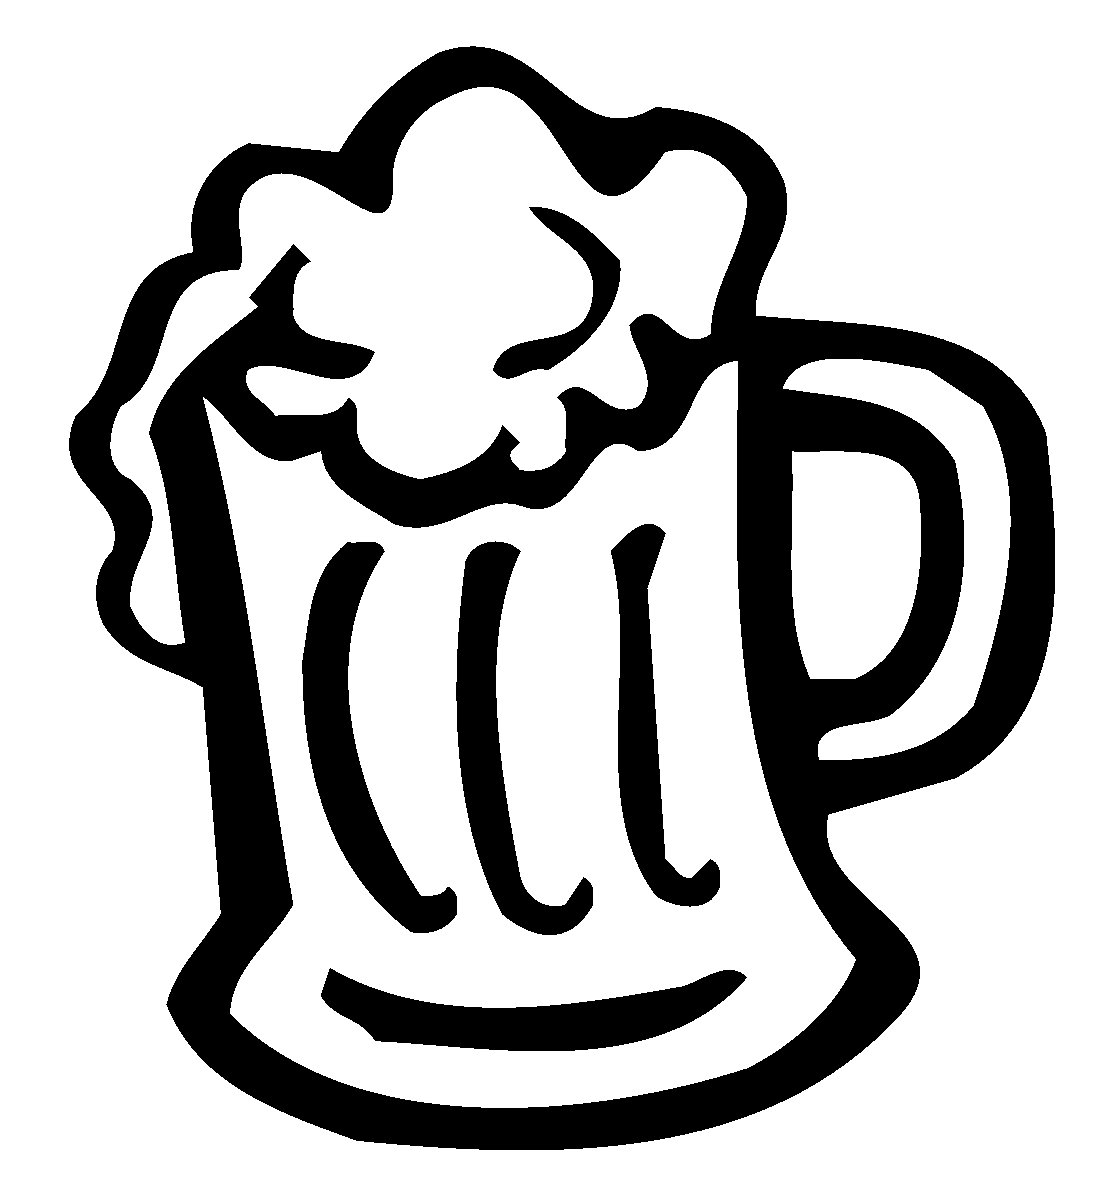 beer stein clipart free - photo #12